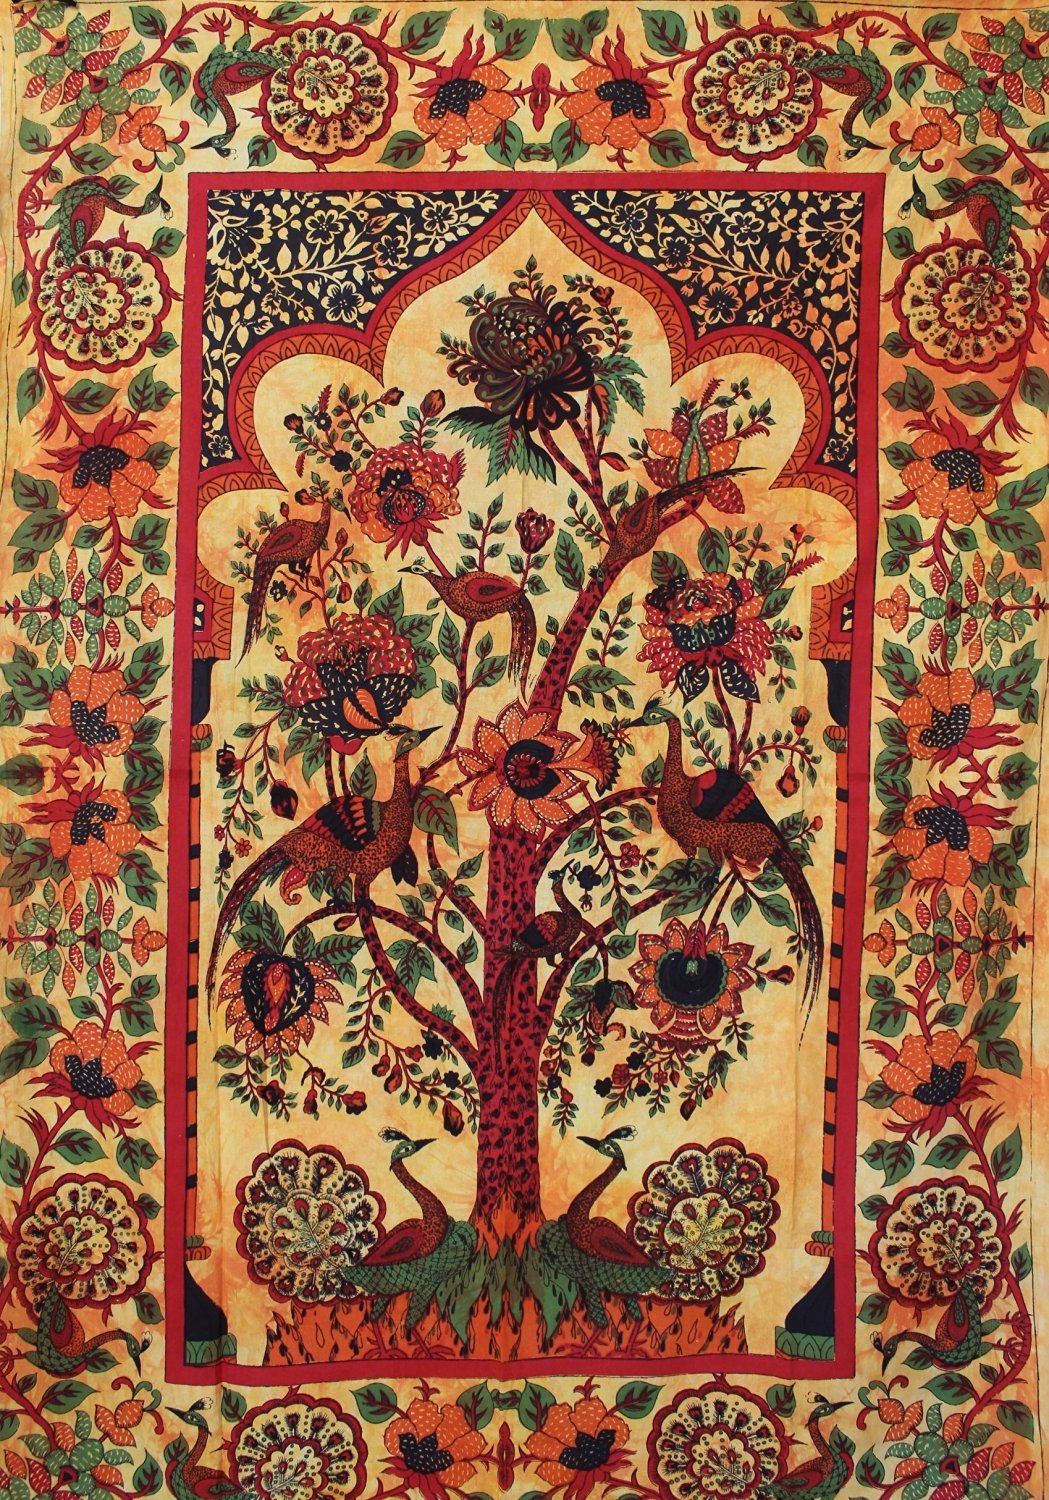 Buy Tree Of Life Tapestry Indian Peacock Tapestry Tree Peacock Tapestry Indian Tapestry Hippie Gypsy Wall Hanging In Cheap Price On Alibaba Com